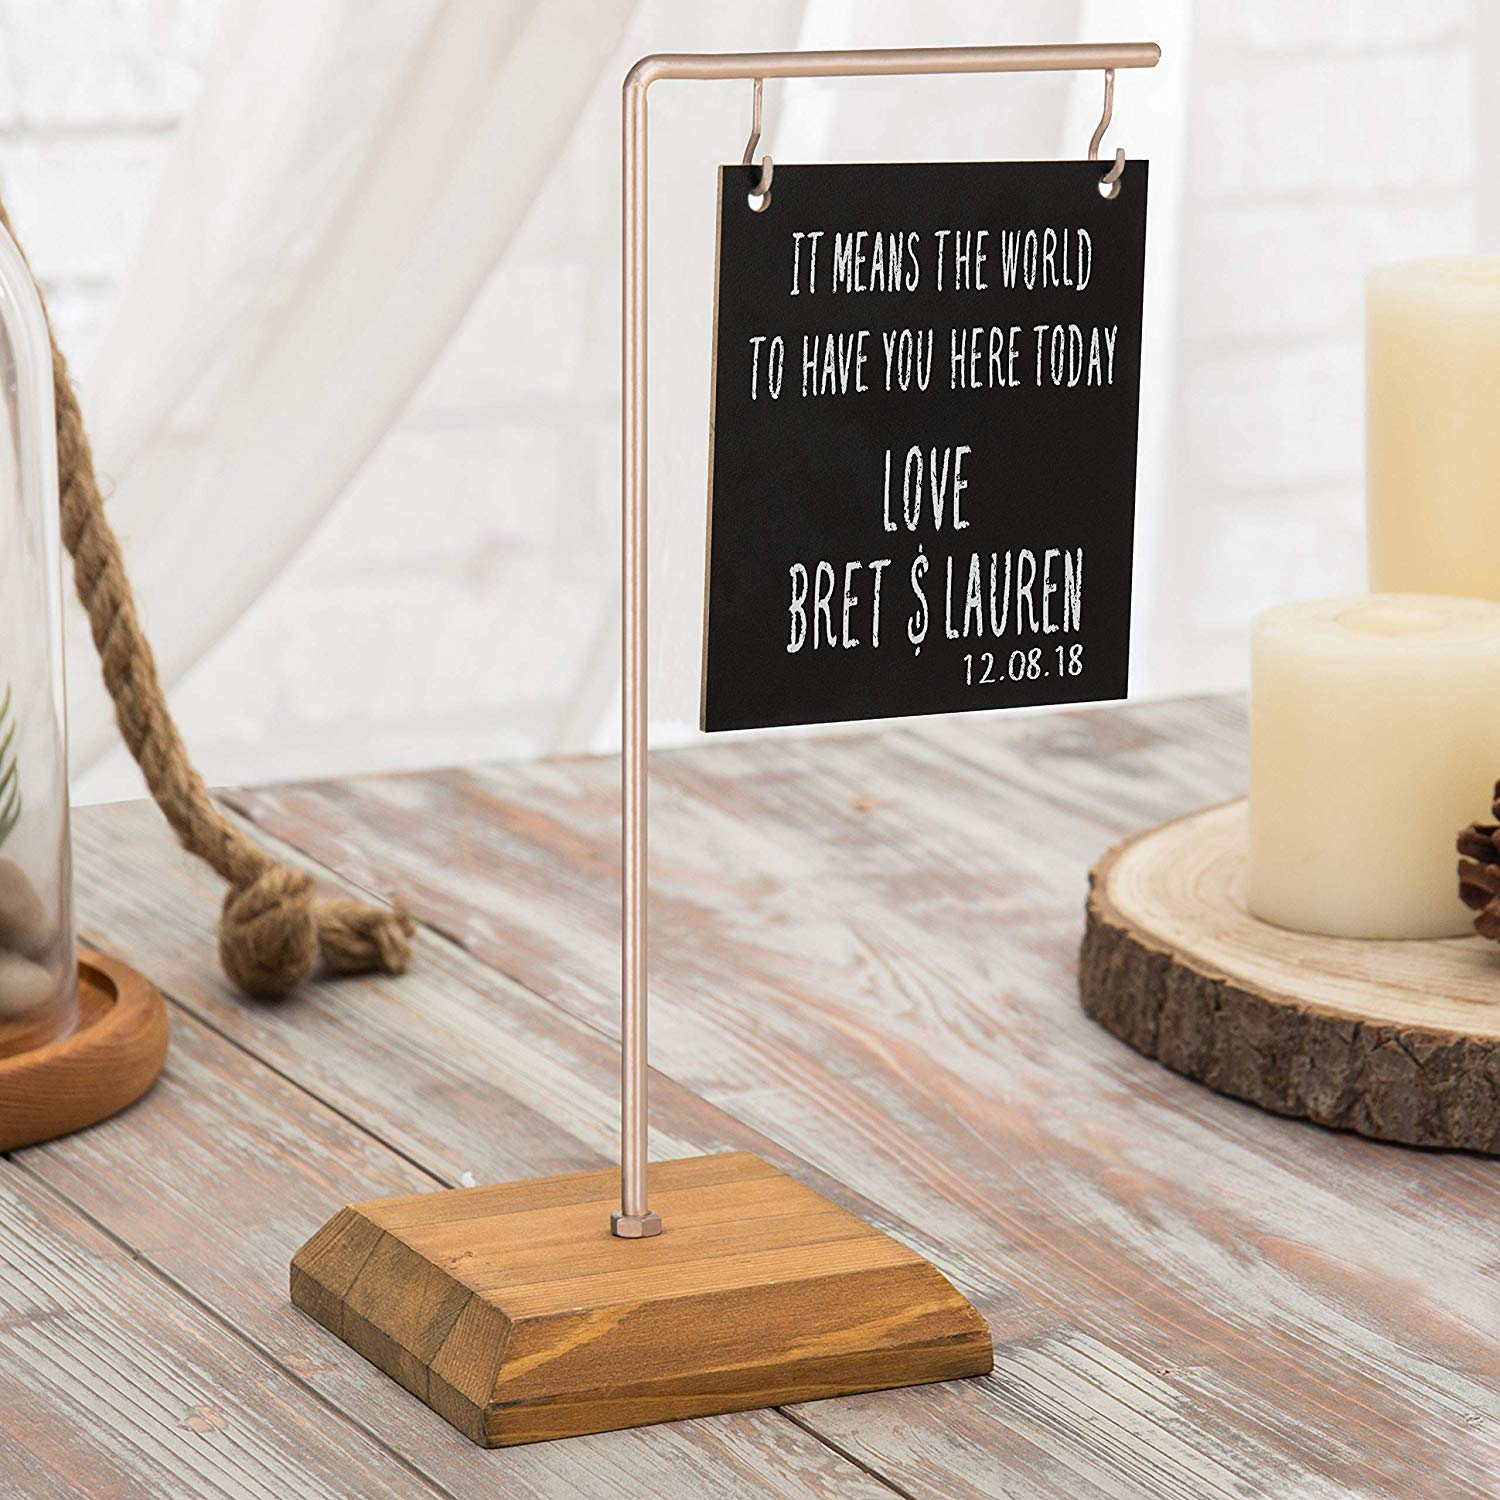 MyGift Tabletop Dual-Sided Chalkboard Sign with Rose Gold-Tone Metal & Wood Stand